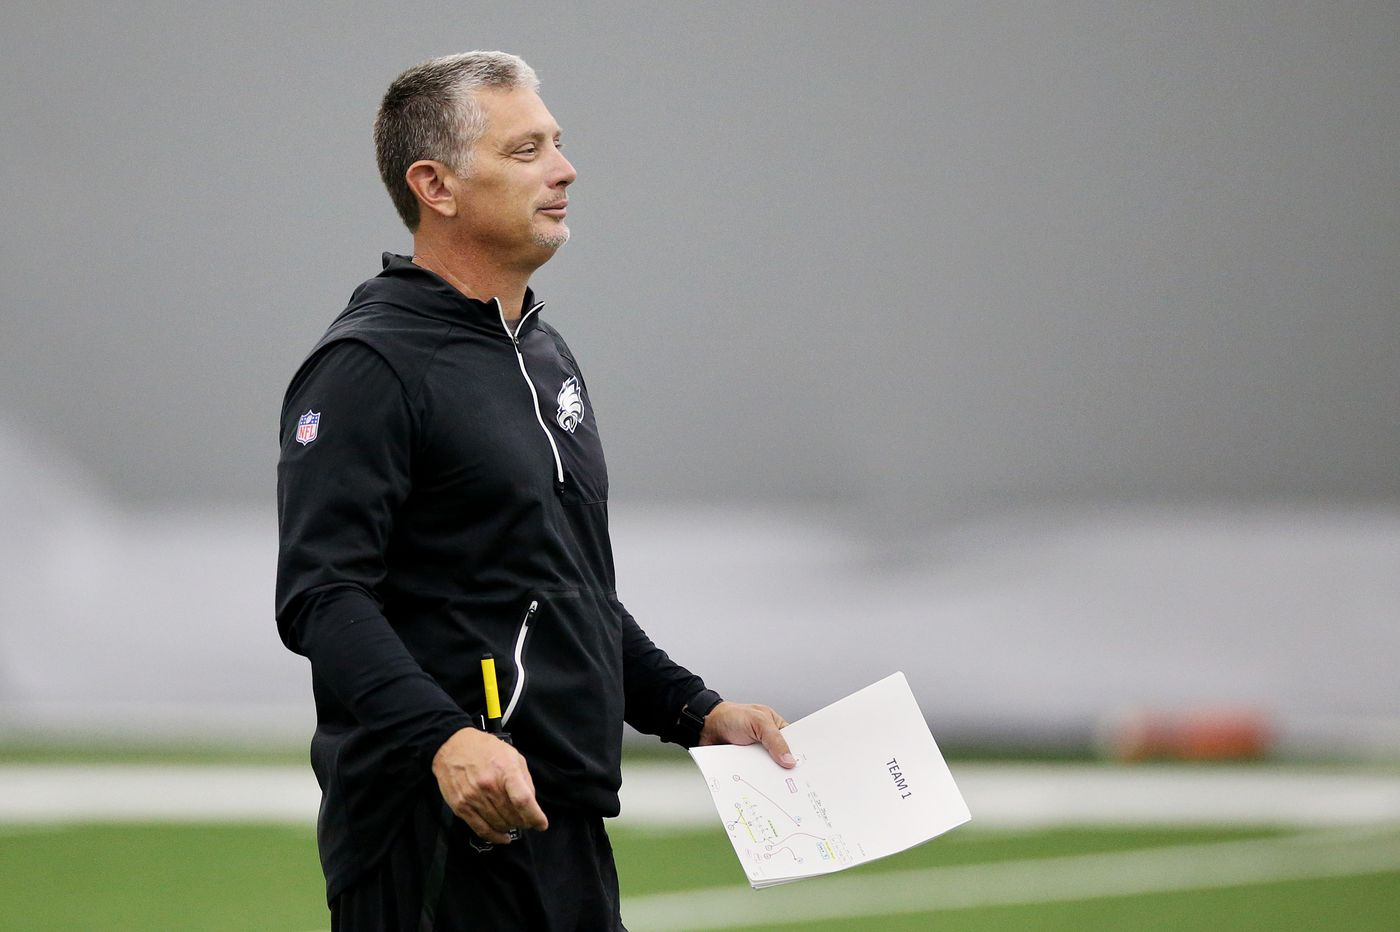 Jim Schwartz went all-out against the Falcons. With a banged-up front four, will that continue? | David Murphy